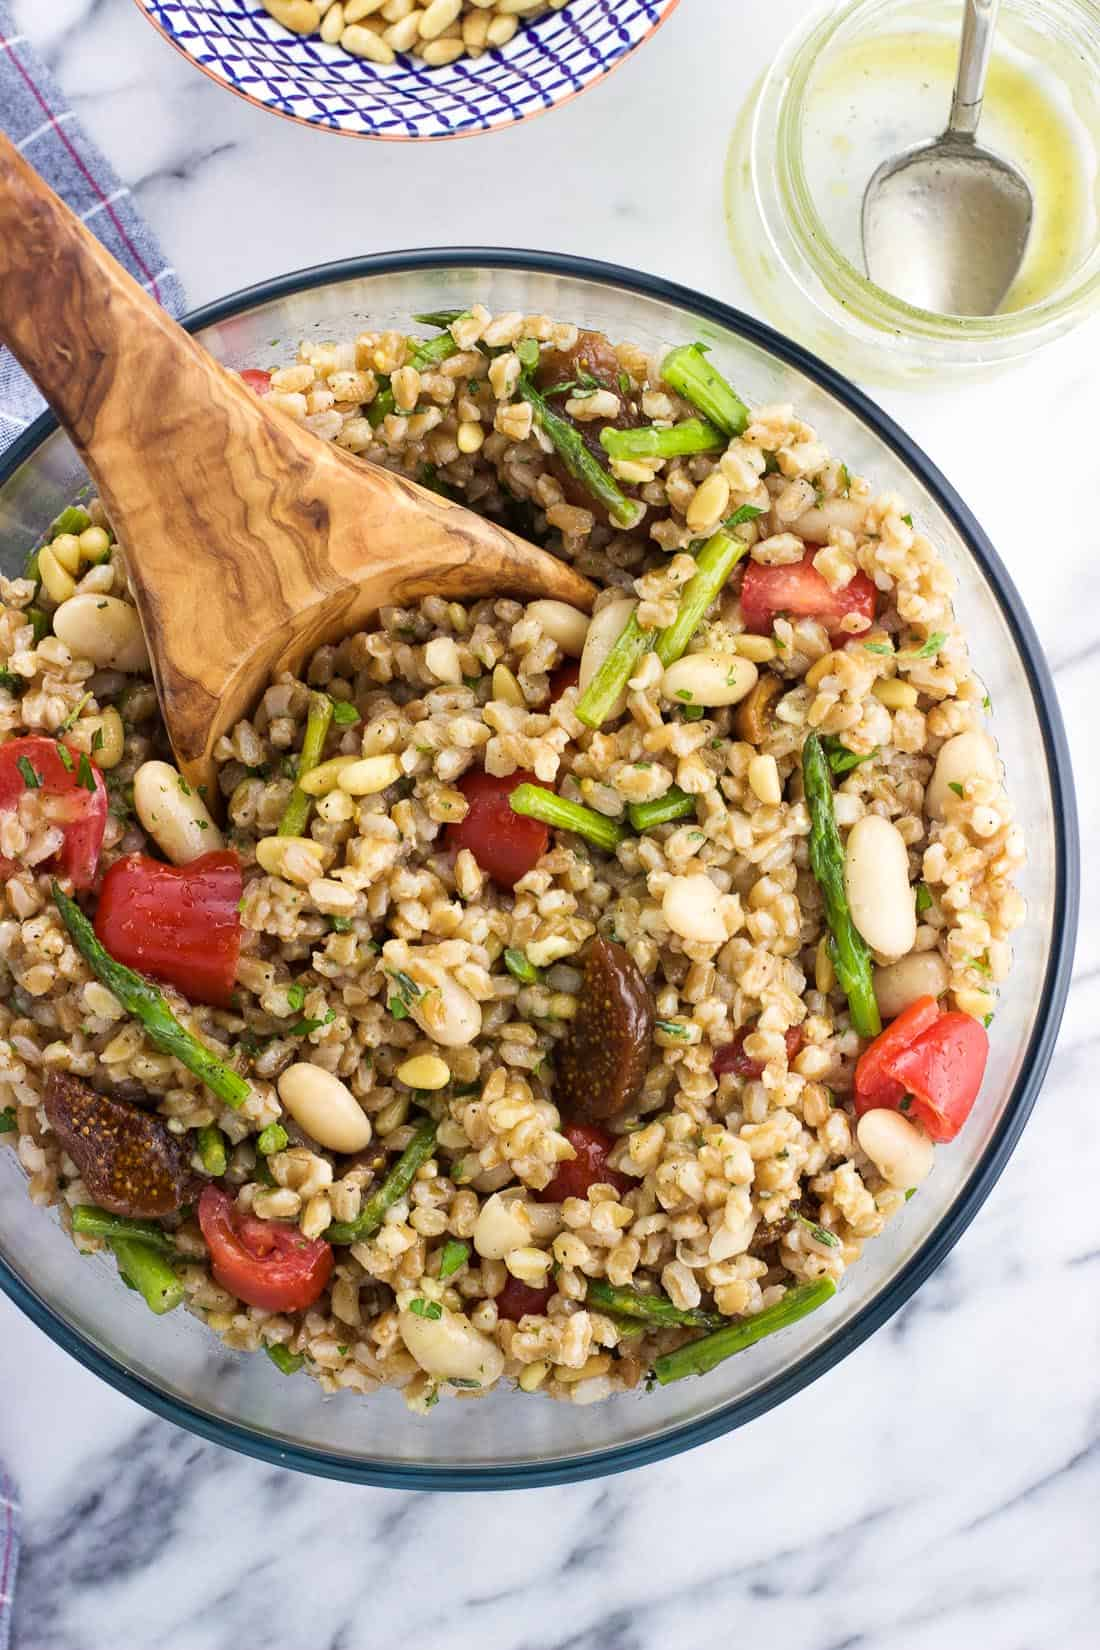 An overhead shot of Mediterranean farro salad in a serving bowl with a wooden serving spoon